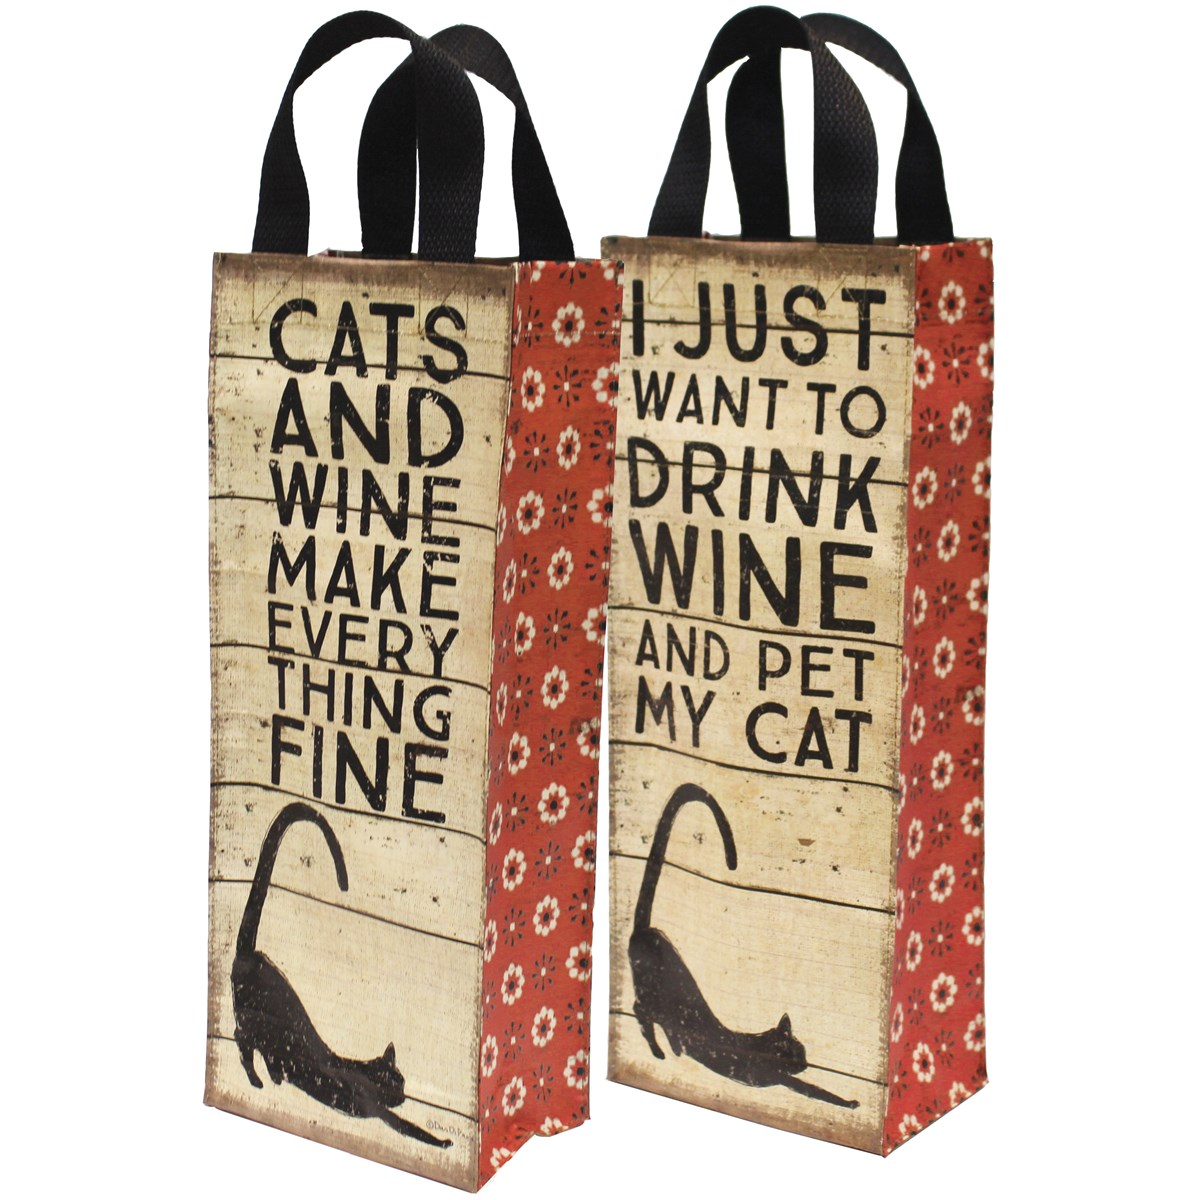 "Wine Tote - Cats and Wine - 5.50"" x 13.75"" x 3.50"" - Post-Consumer Material, Nylon"